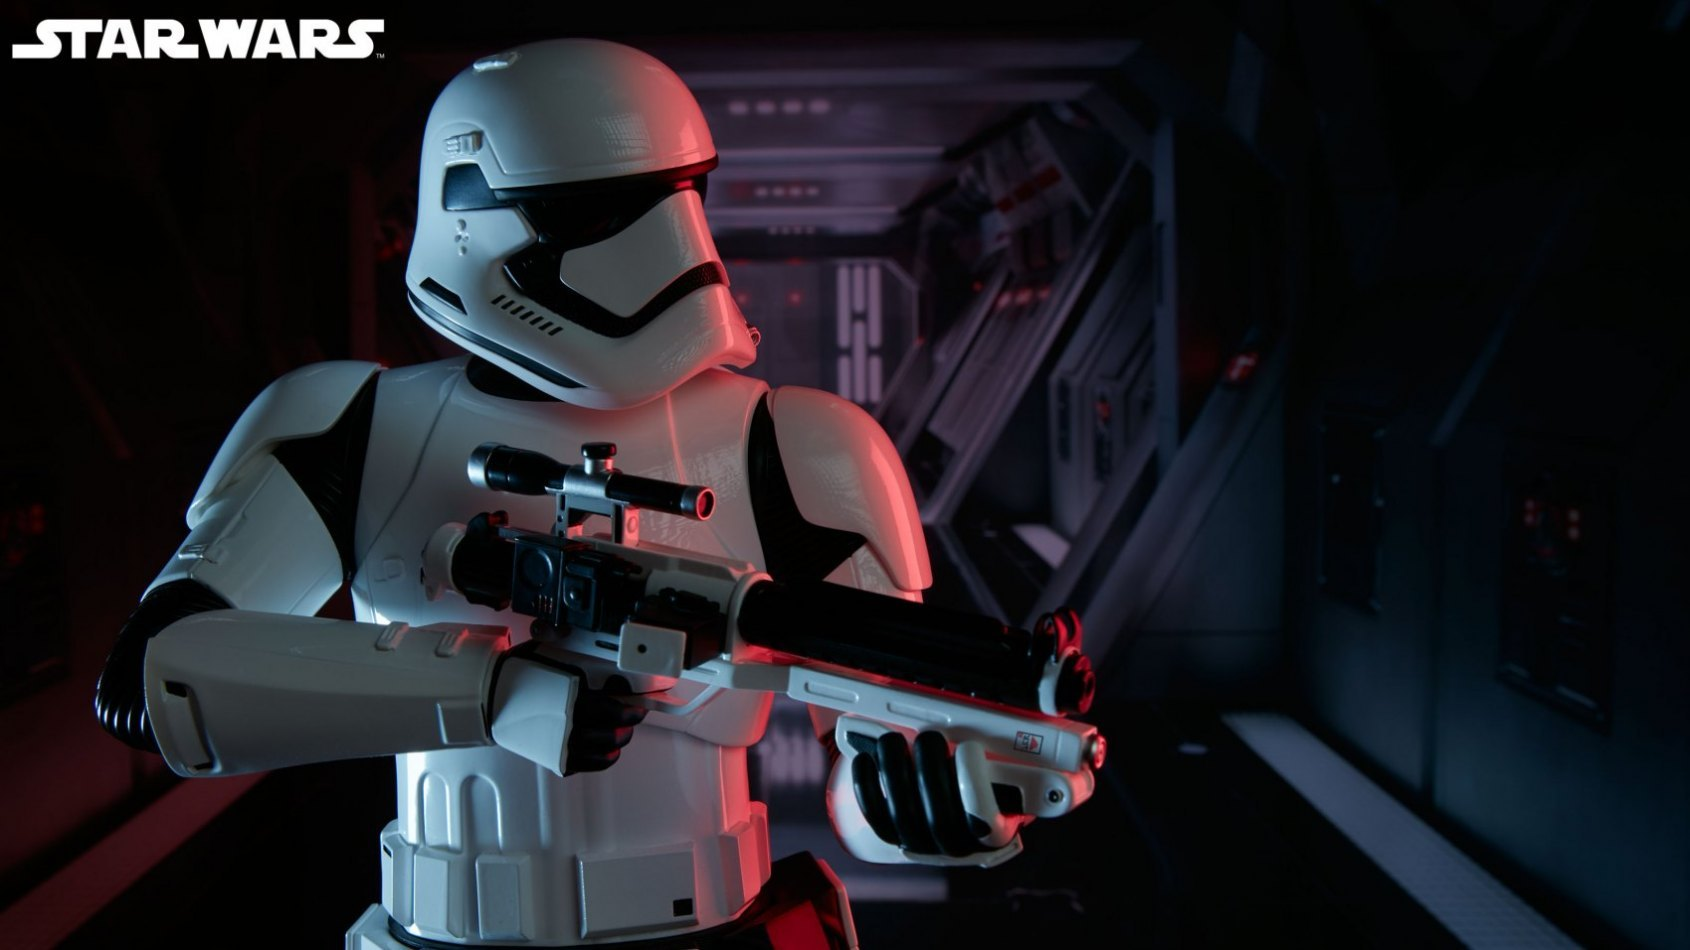 [Sideshow] First Order Stormtrooper Premium Format Figure disponible